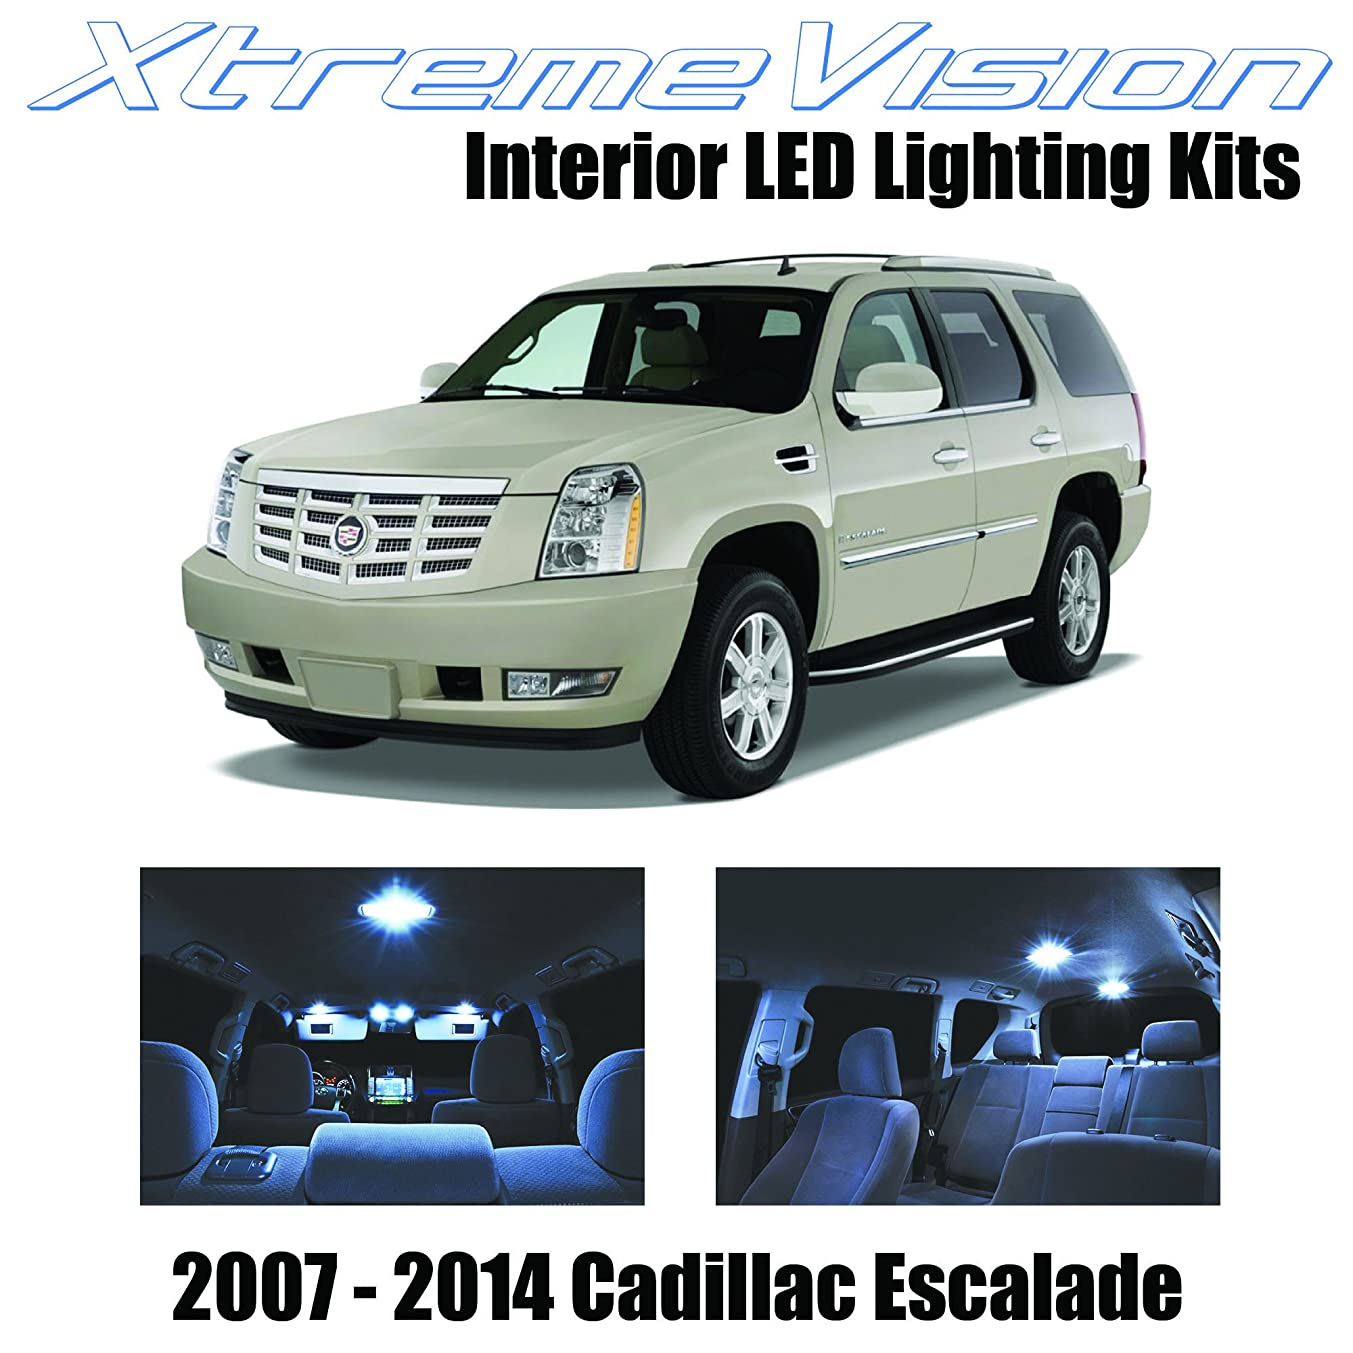 XtremeVision Interior LED for Cadillac Escalade 2007-2014 (16 Pieces) Cool White Interior LED Kit + Installation Tool